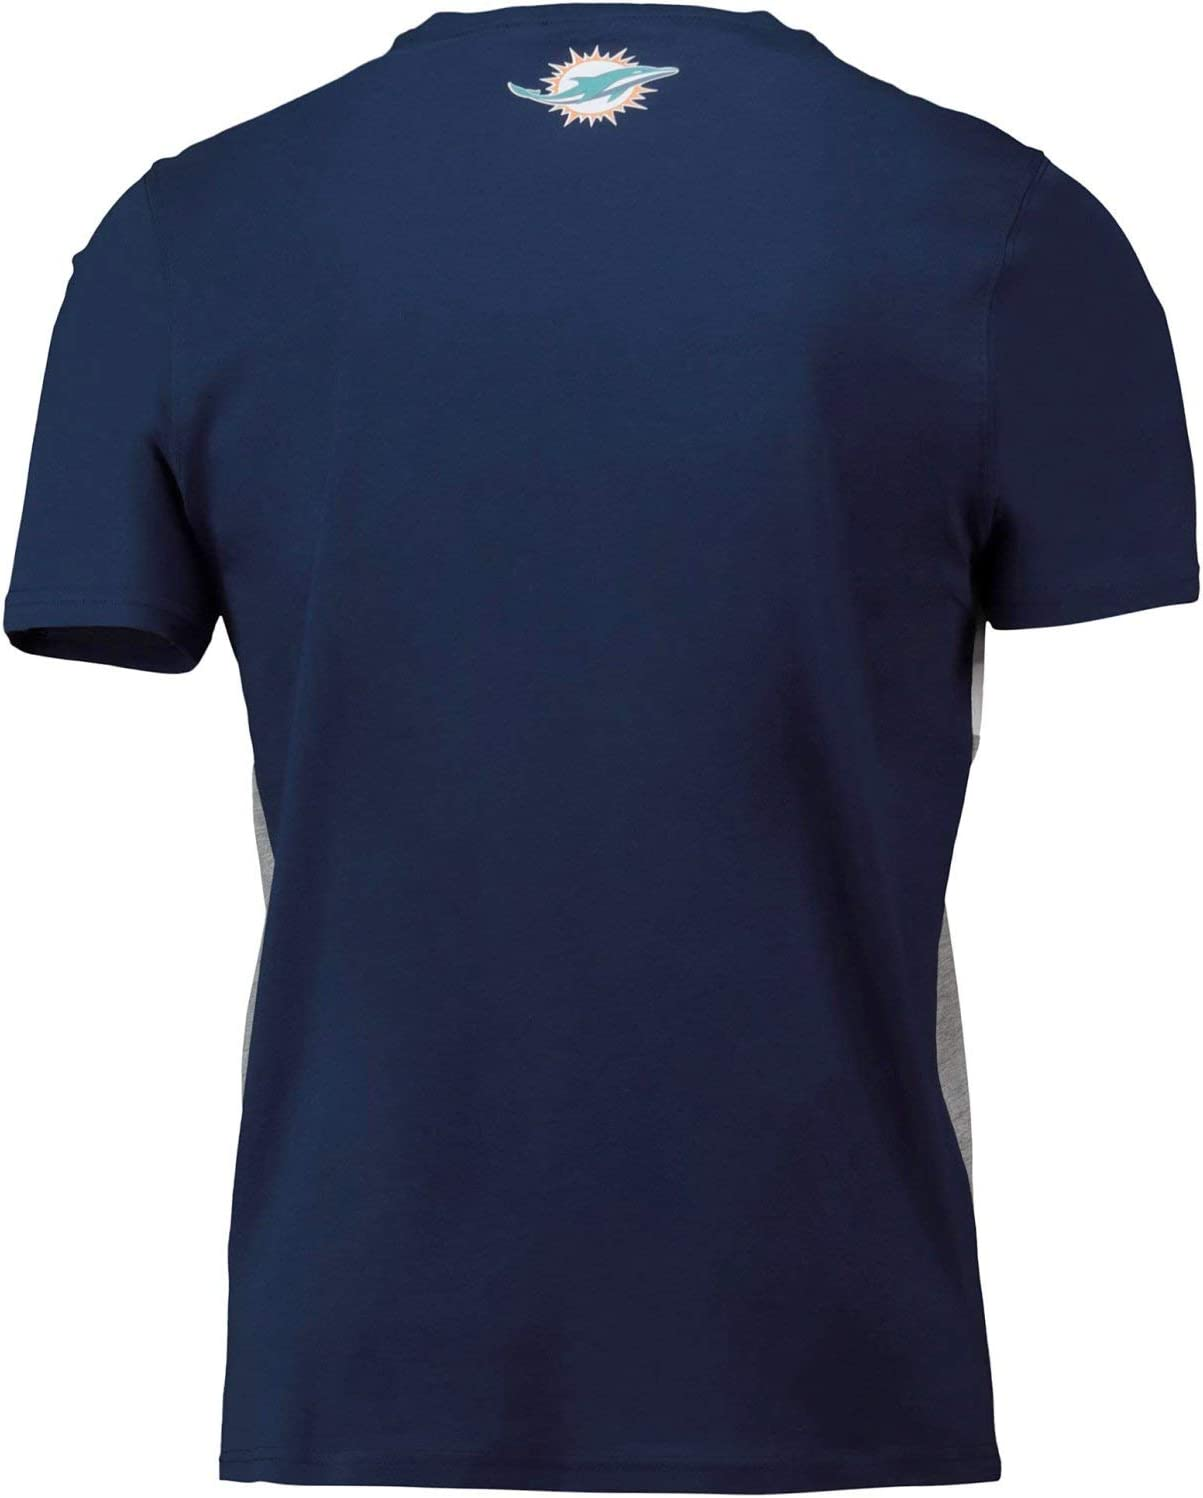 NFL Miami Dolphins Cut And Sew T Shirt Navy Mens Fanatics Branded.